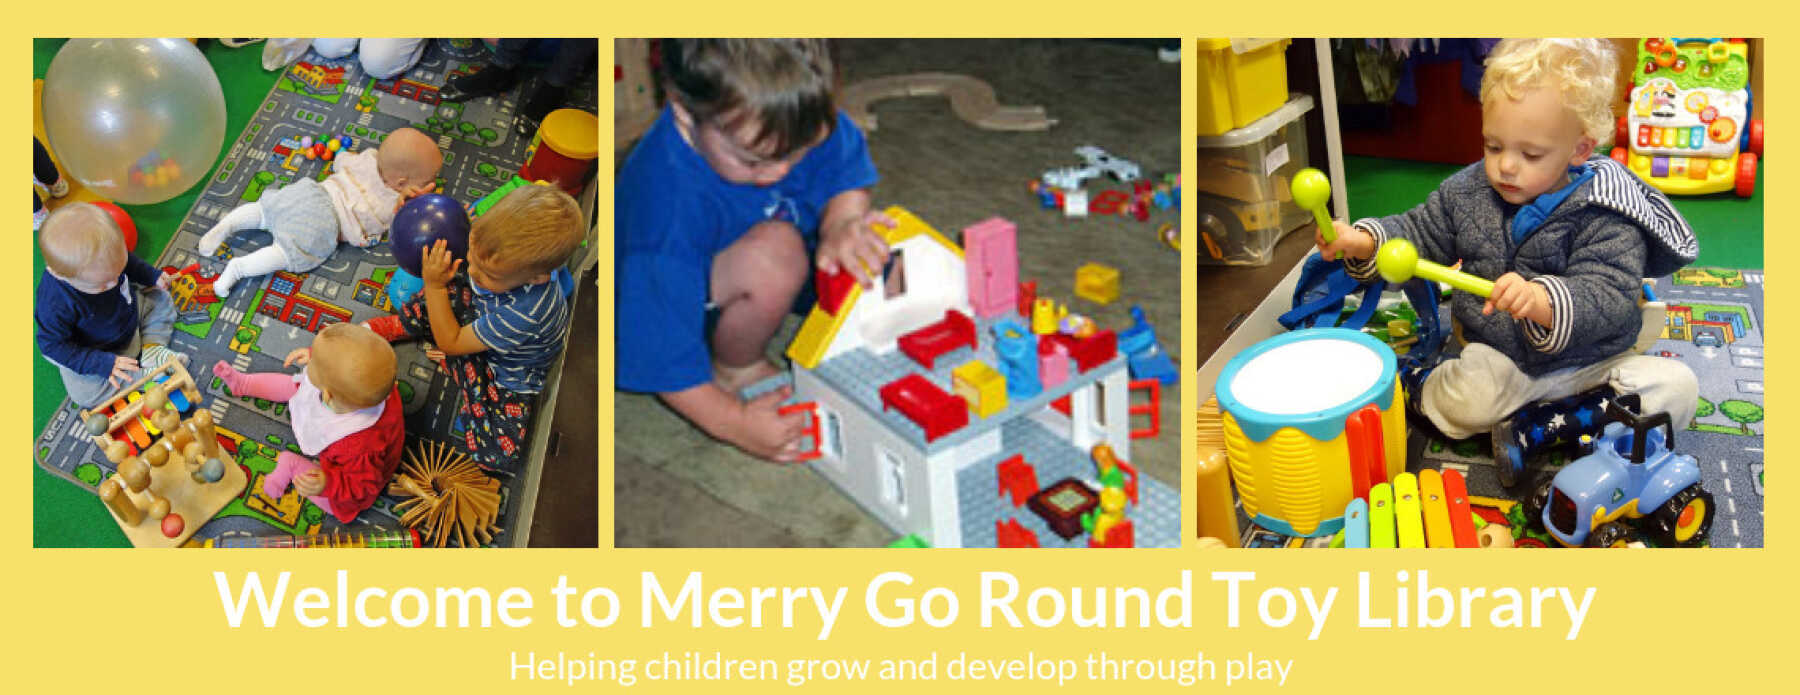 Featured Image for Merry Go Round Toy Library